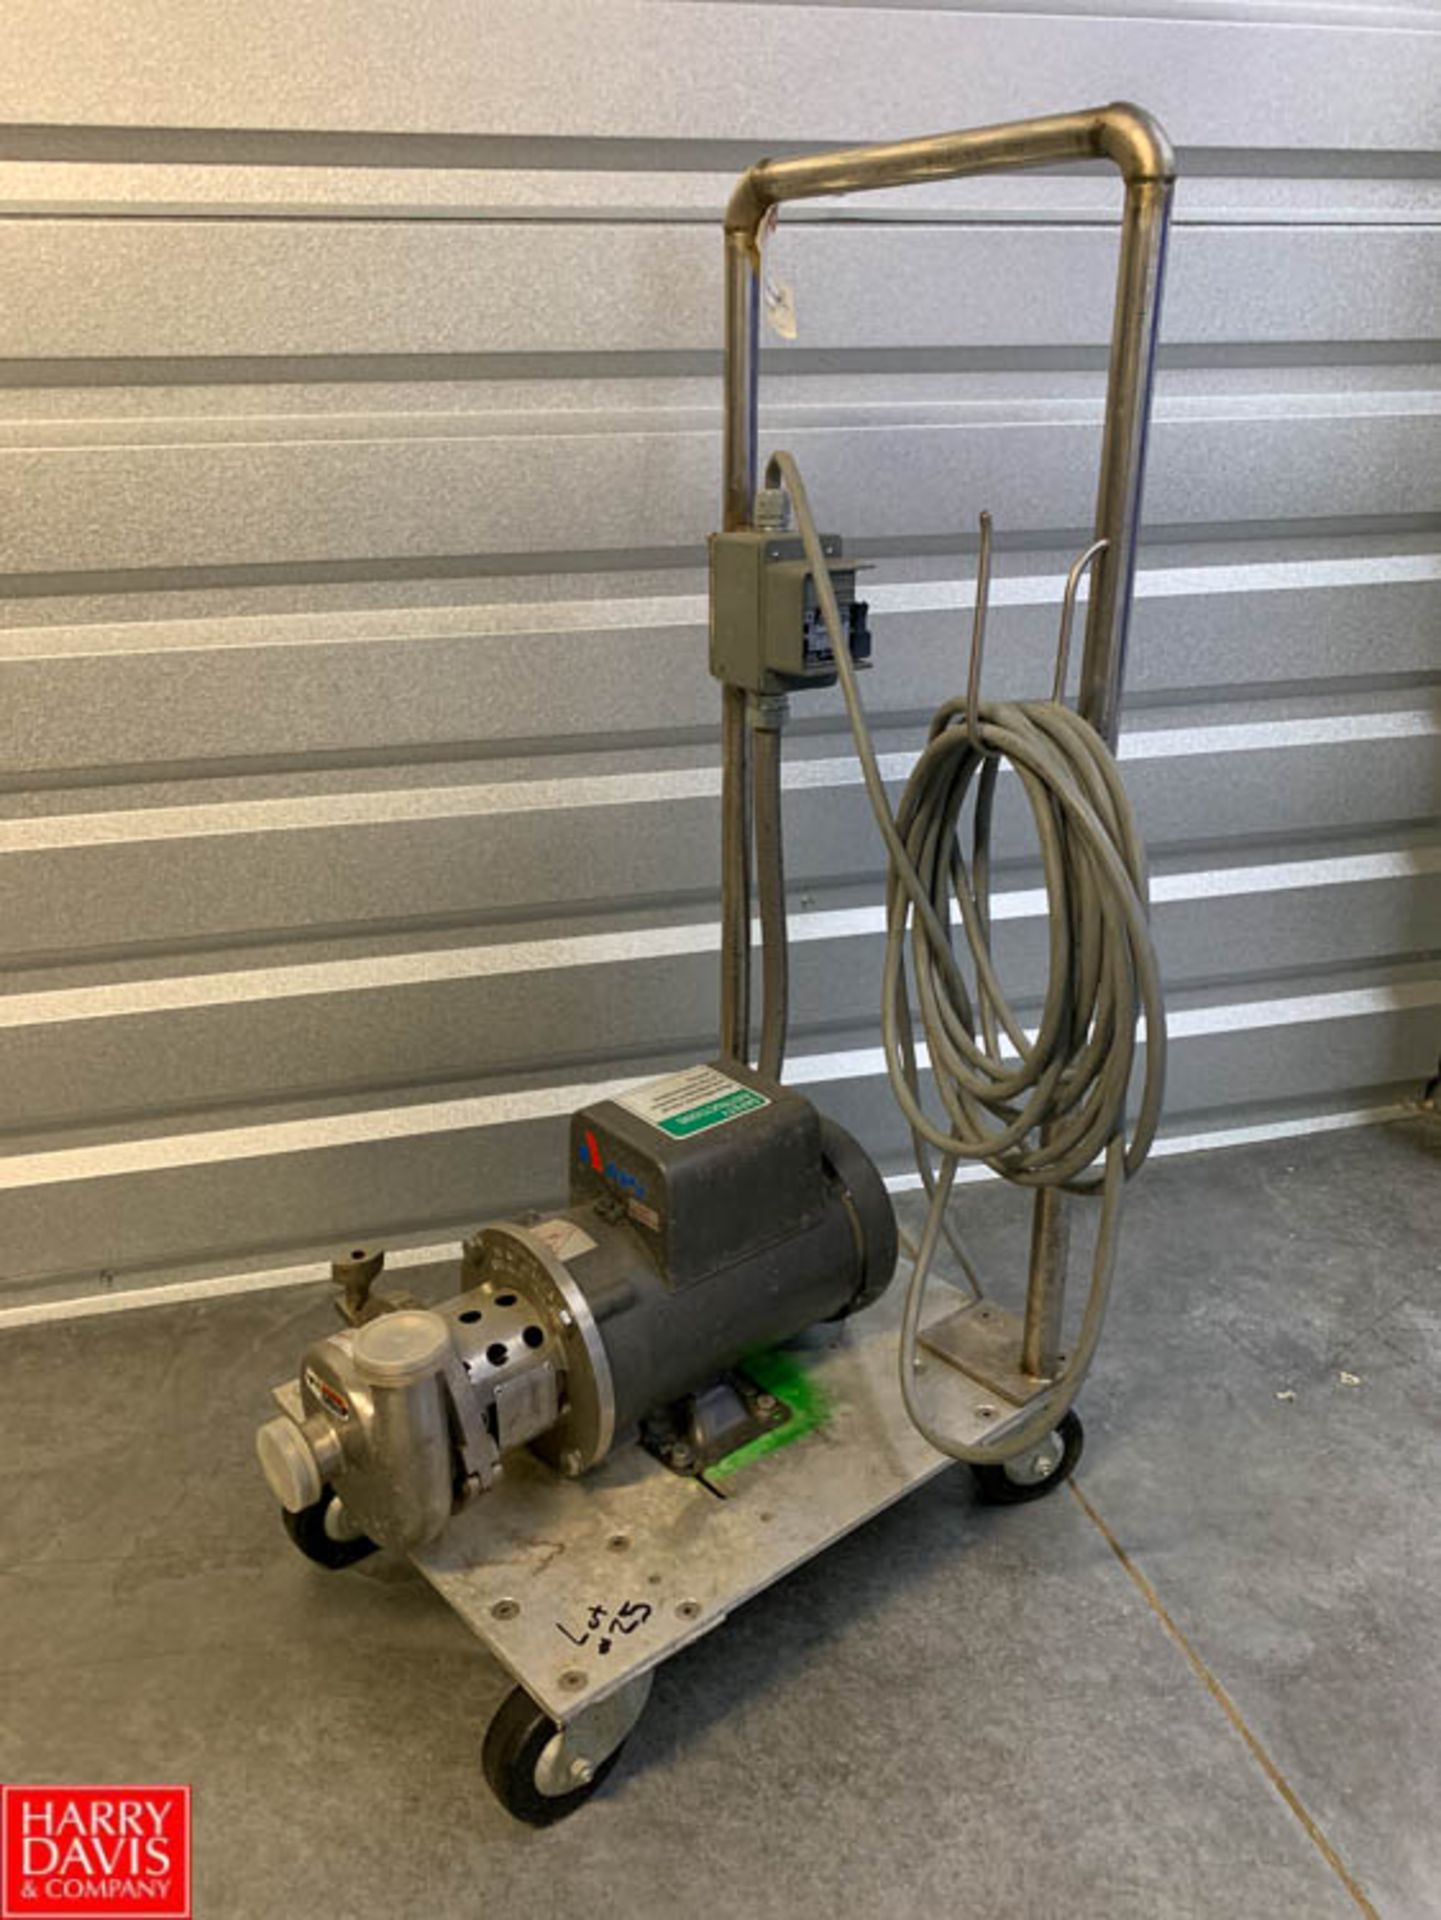 Lot 25 - APV Centrifugal Pump Model MO4BP831769N4V2 with 0.75 HP Baldor 1,725 RPM Motor, Mounted on S/S